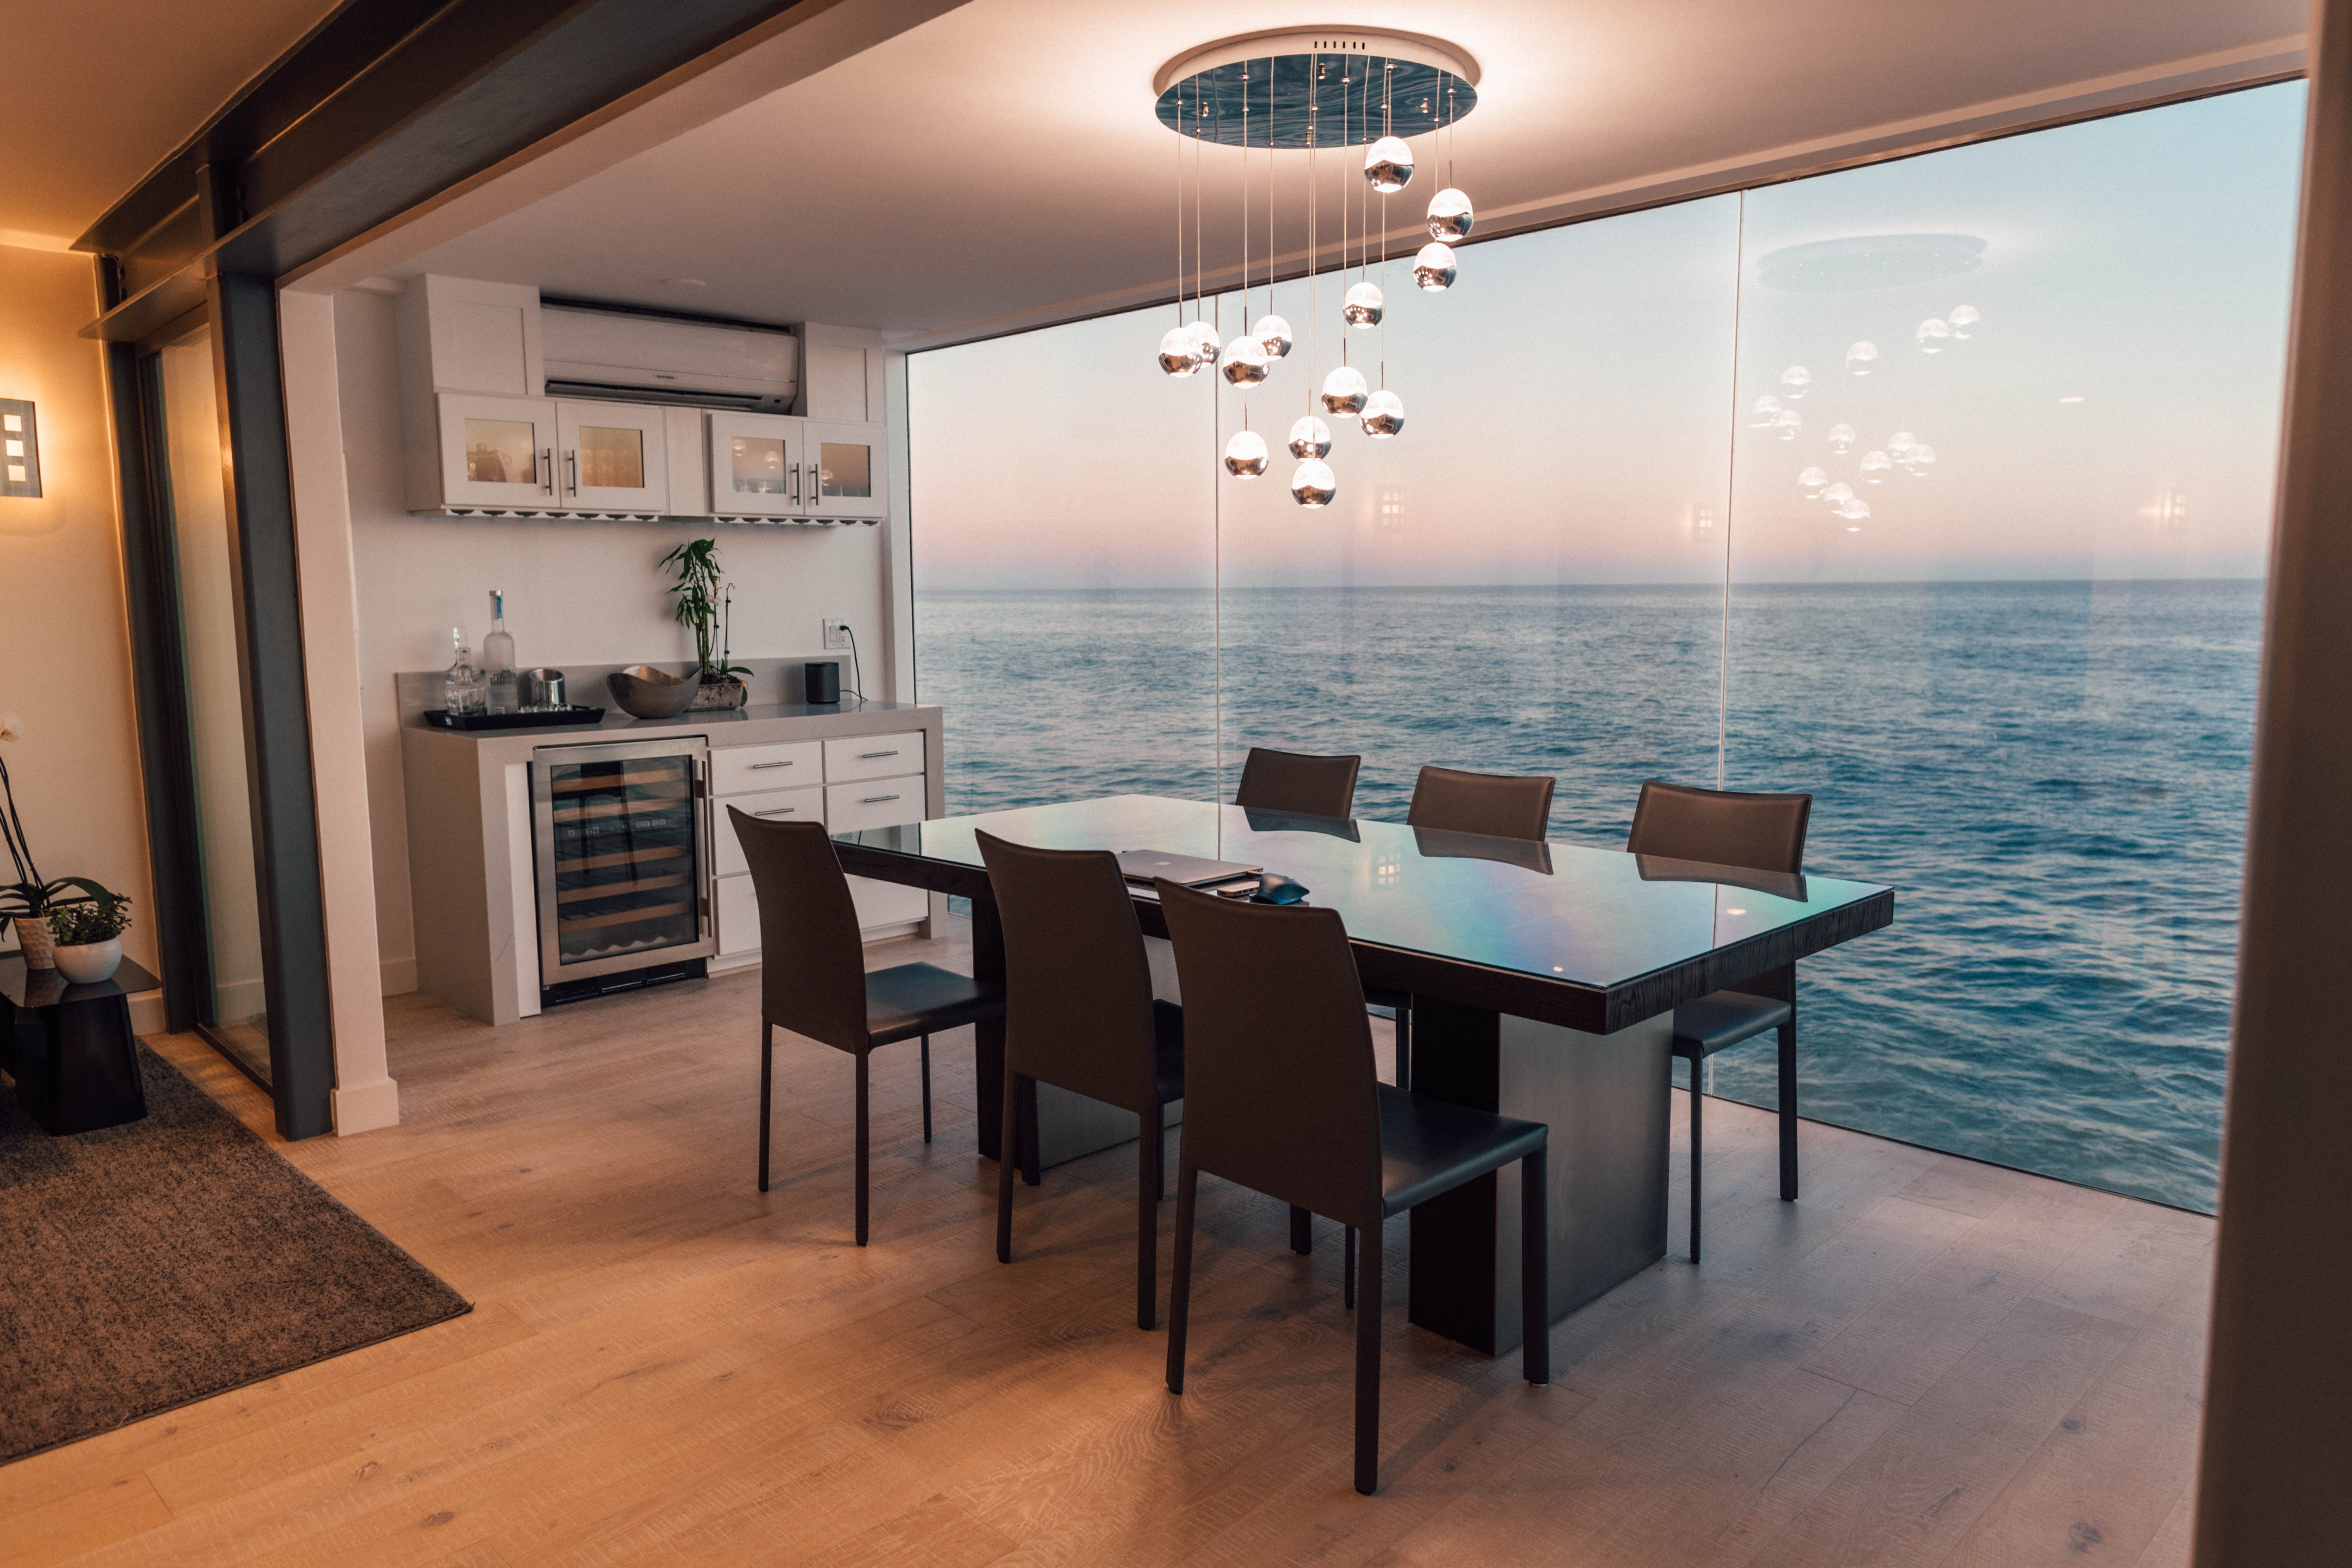 rented dining set in staged home with ocean backdrop